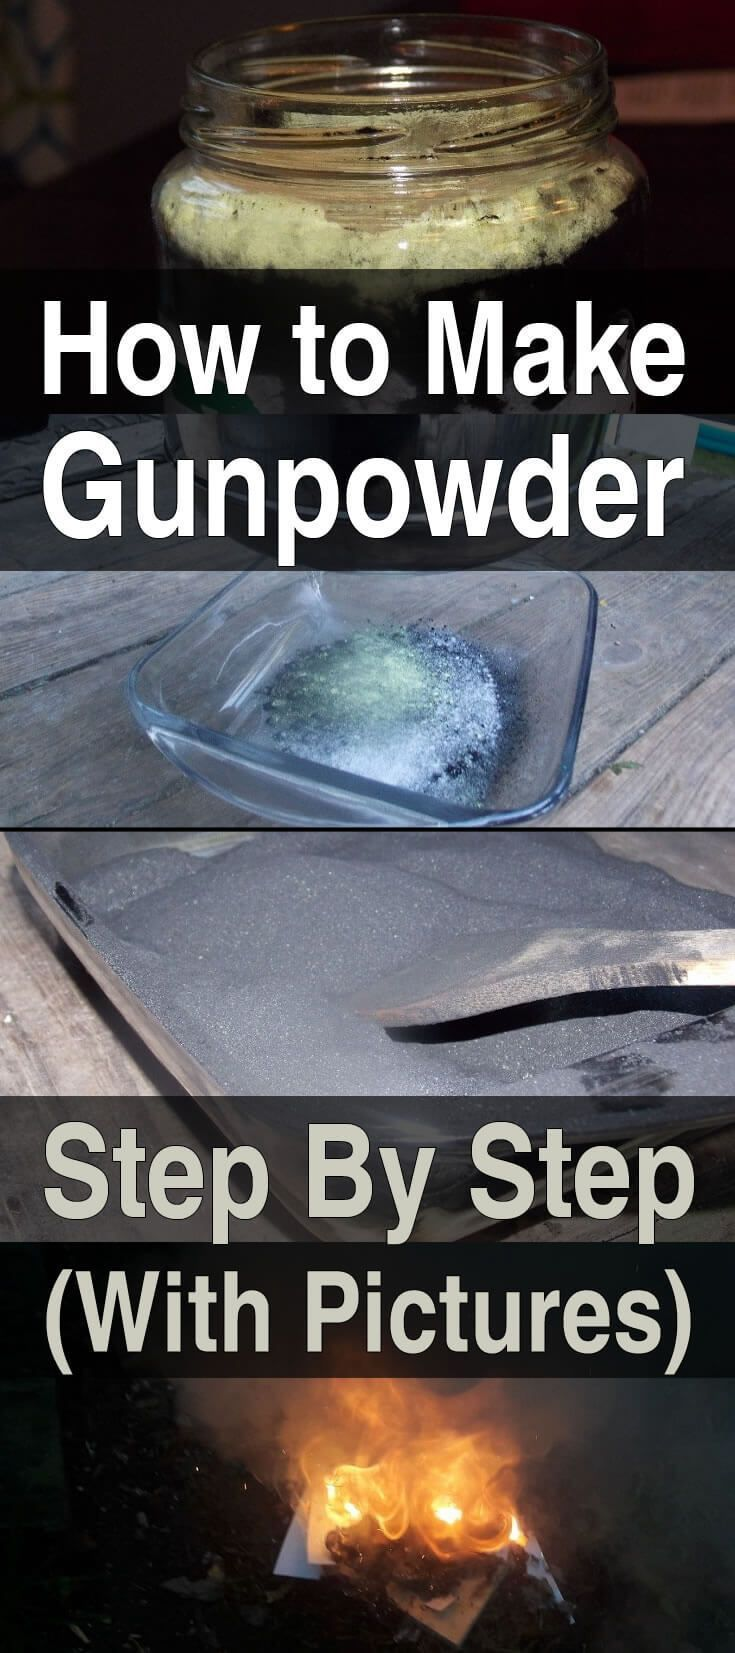 How to Make Gunpowder Step by Step (With Pics) | DIY Gunpowder | Frugal Gunpowder | Survival